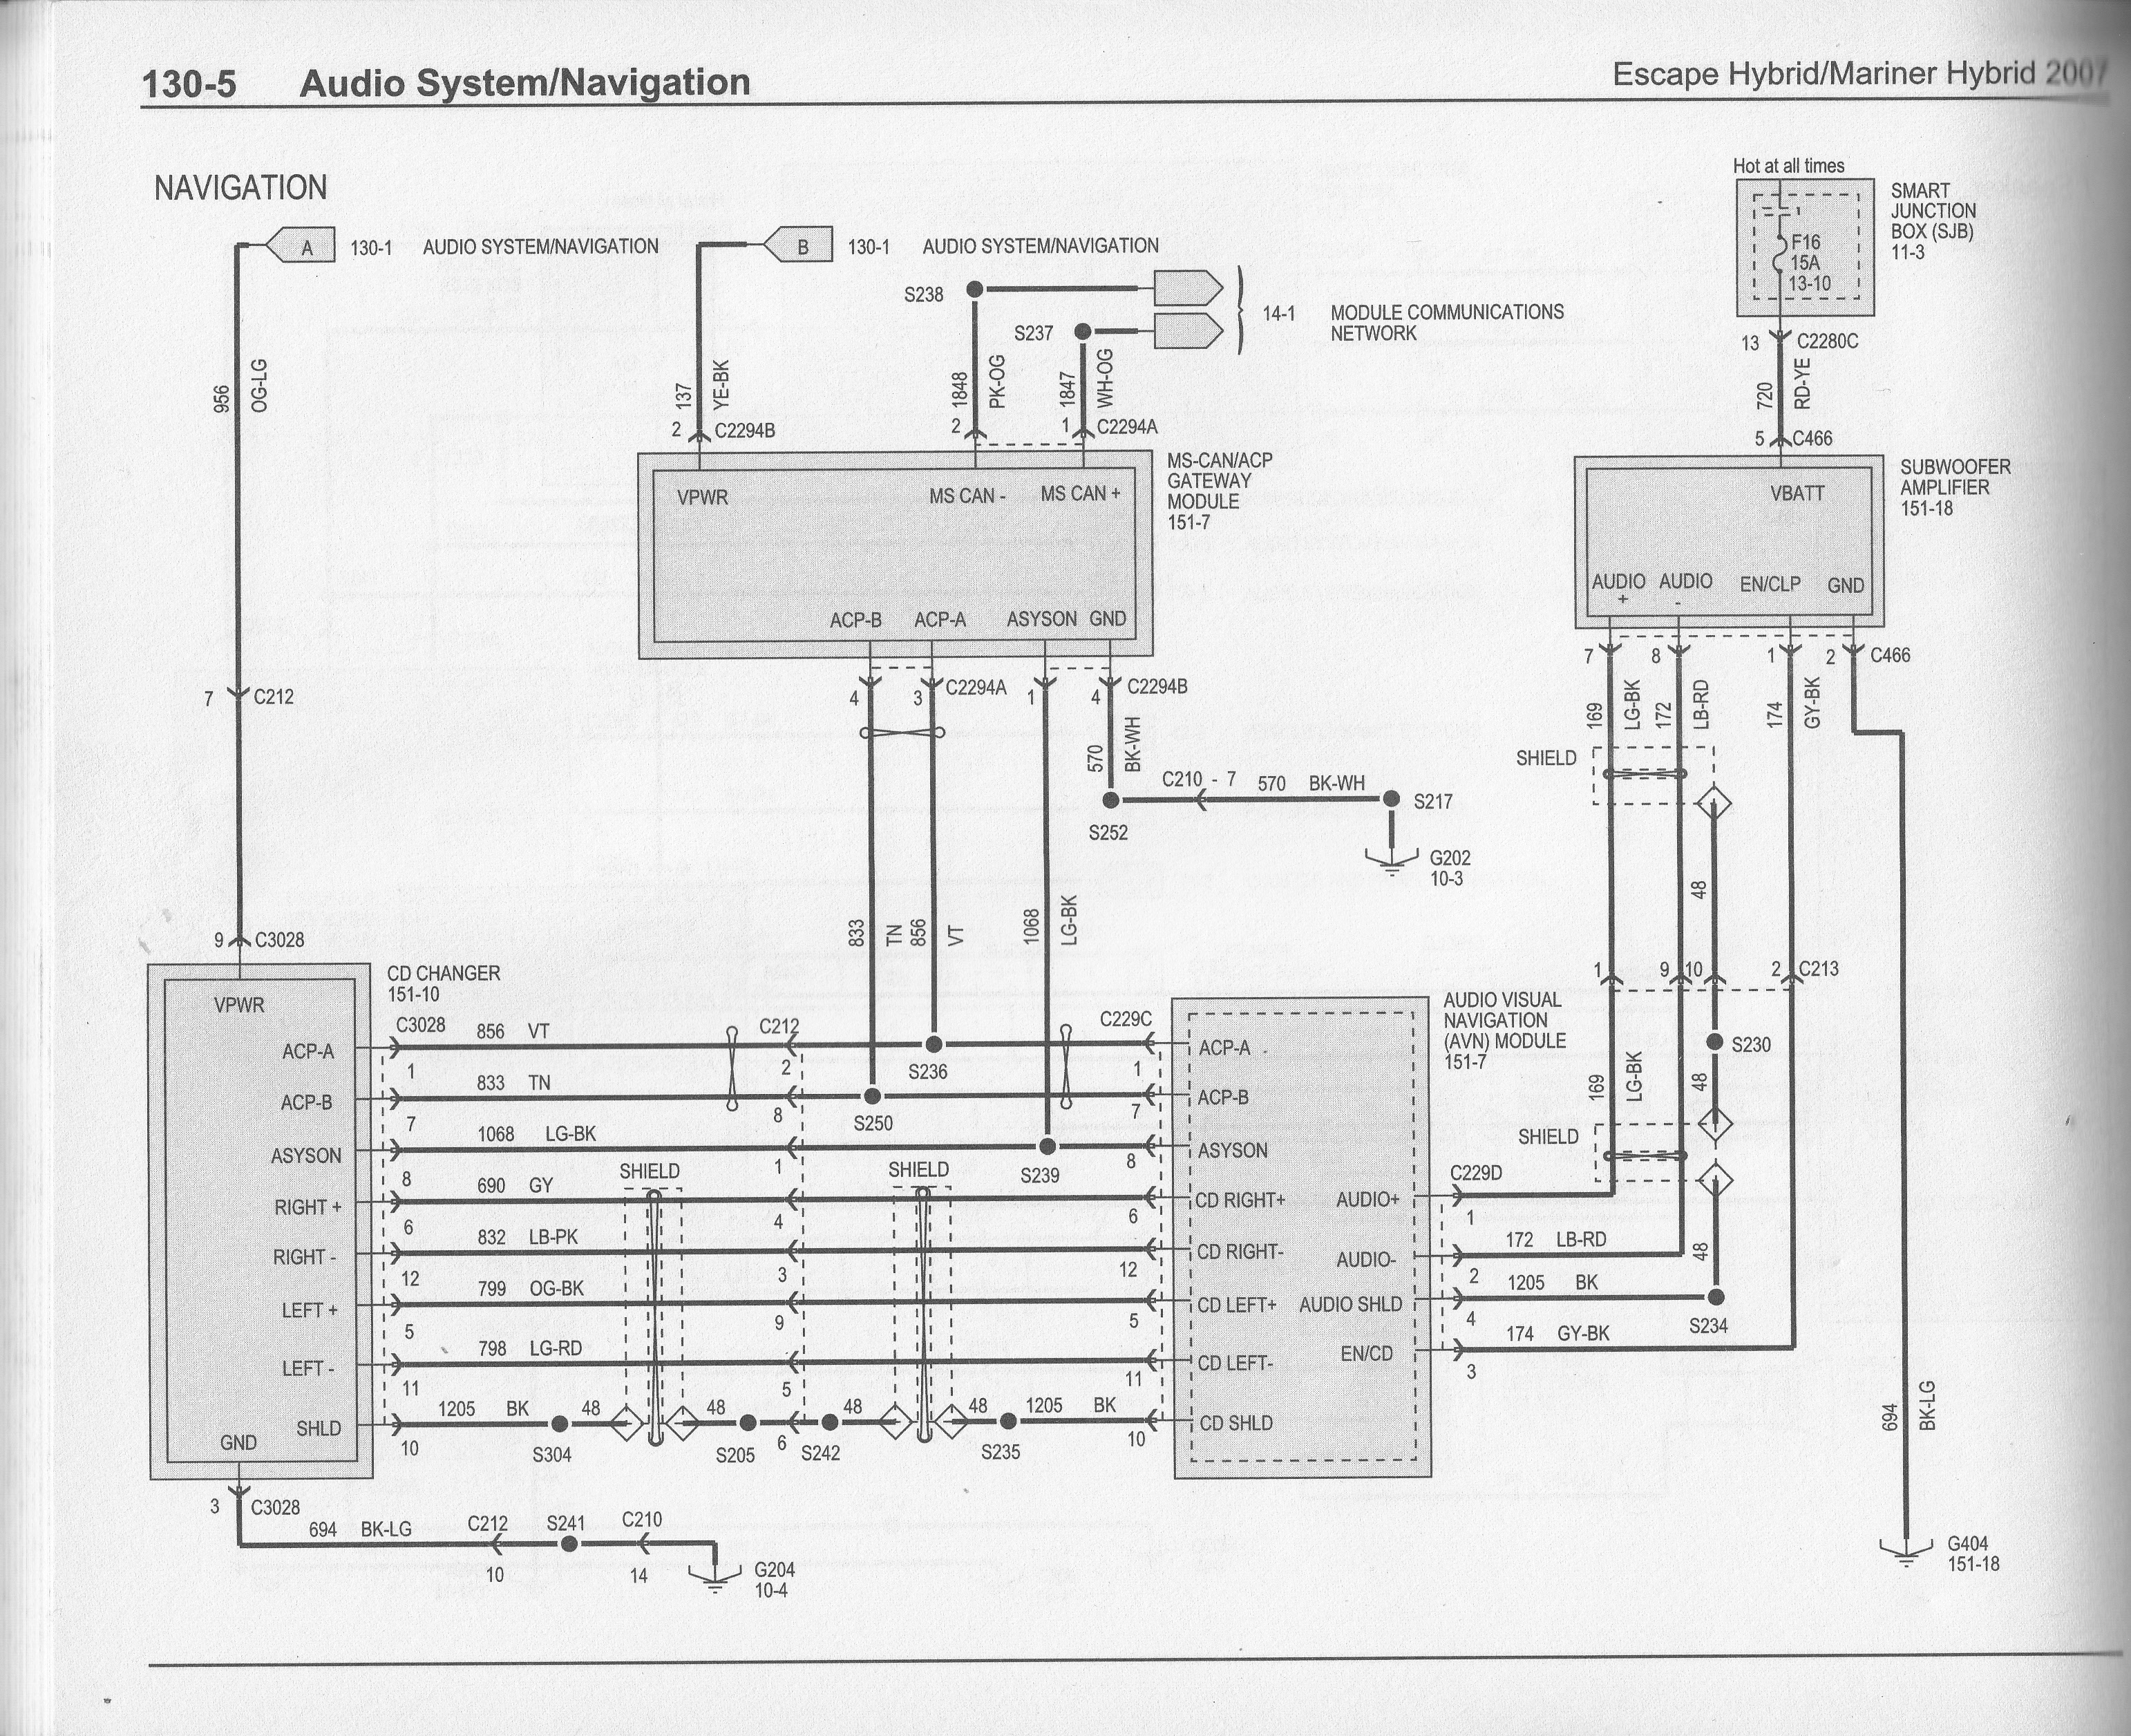 ford stereo wiring diagrams f87f 19b132 ab list of wiring Ford Escape Wiring Schematic